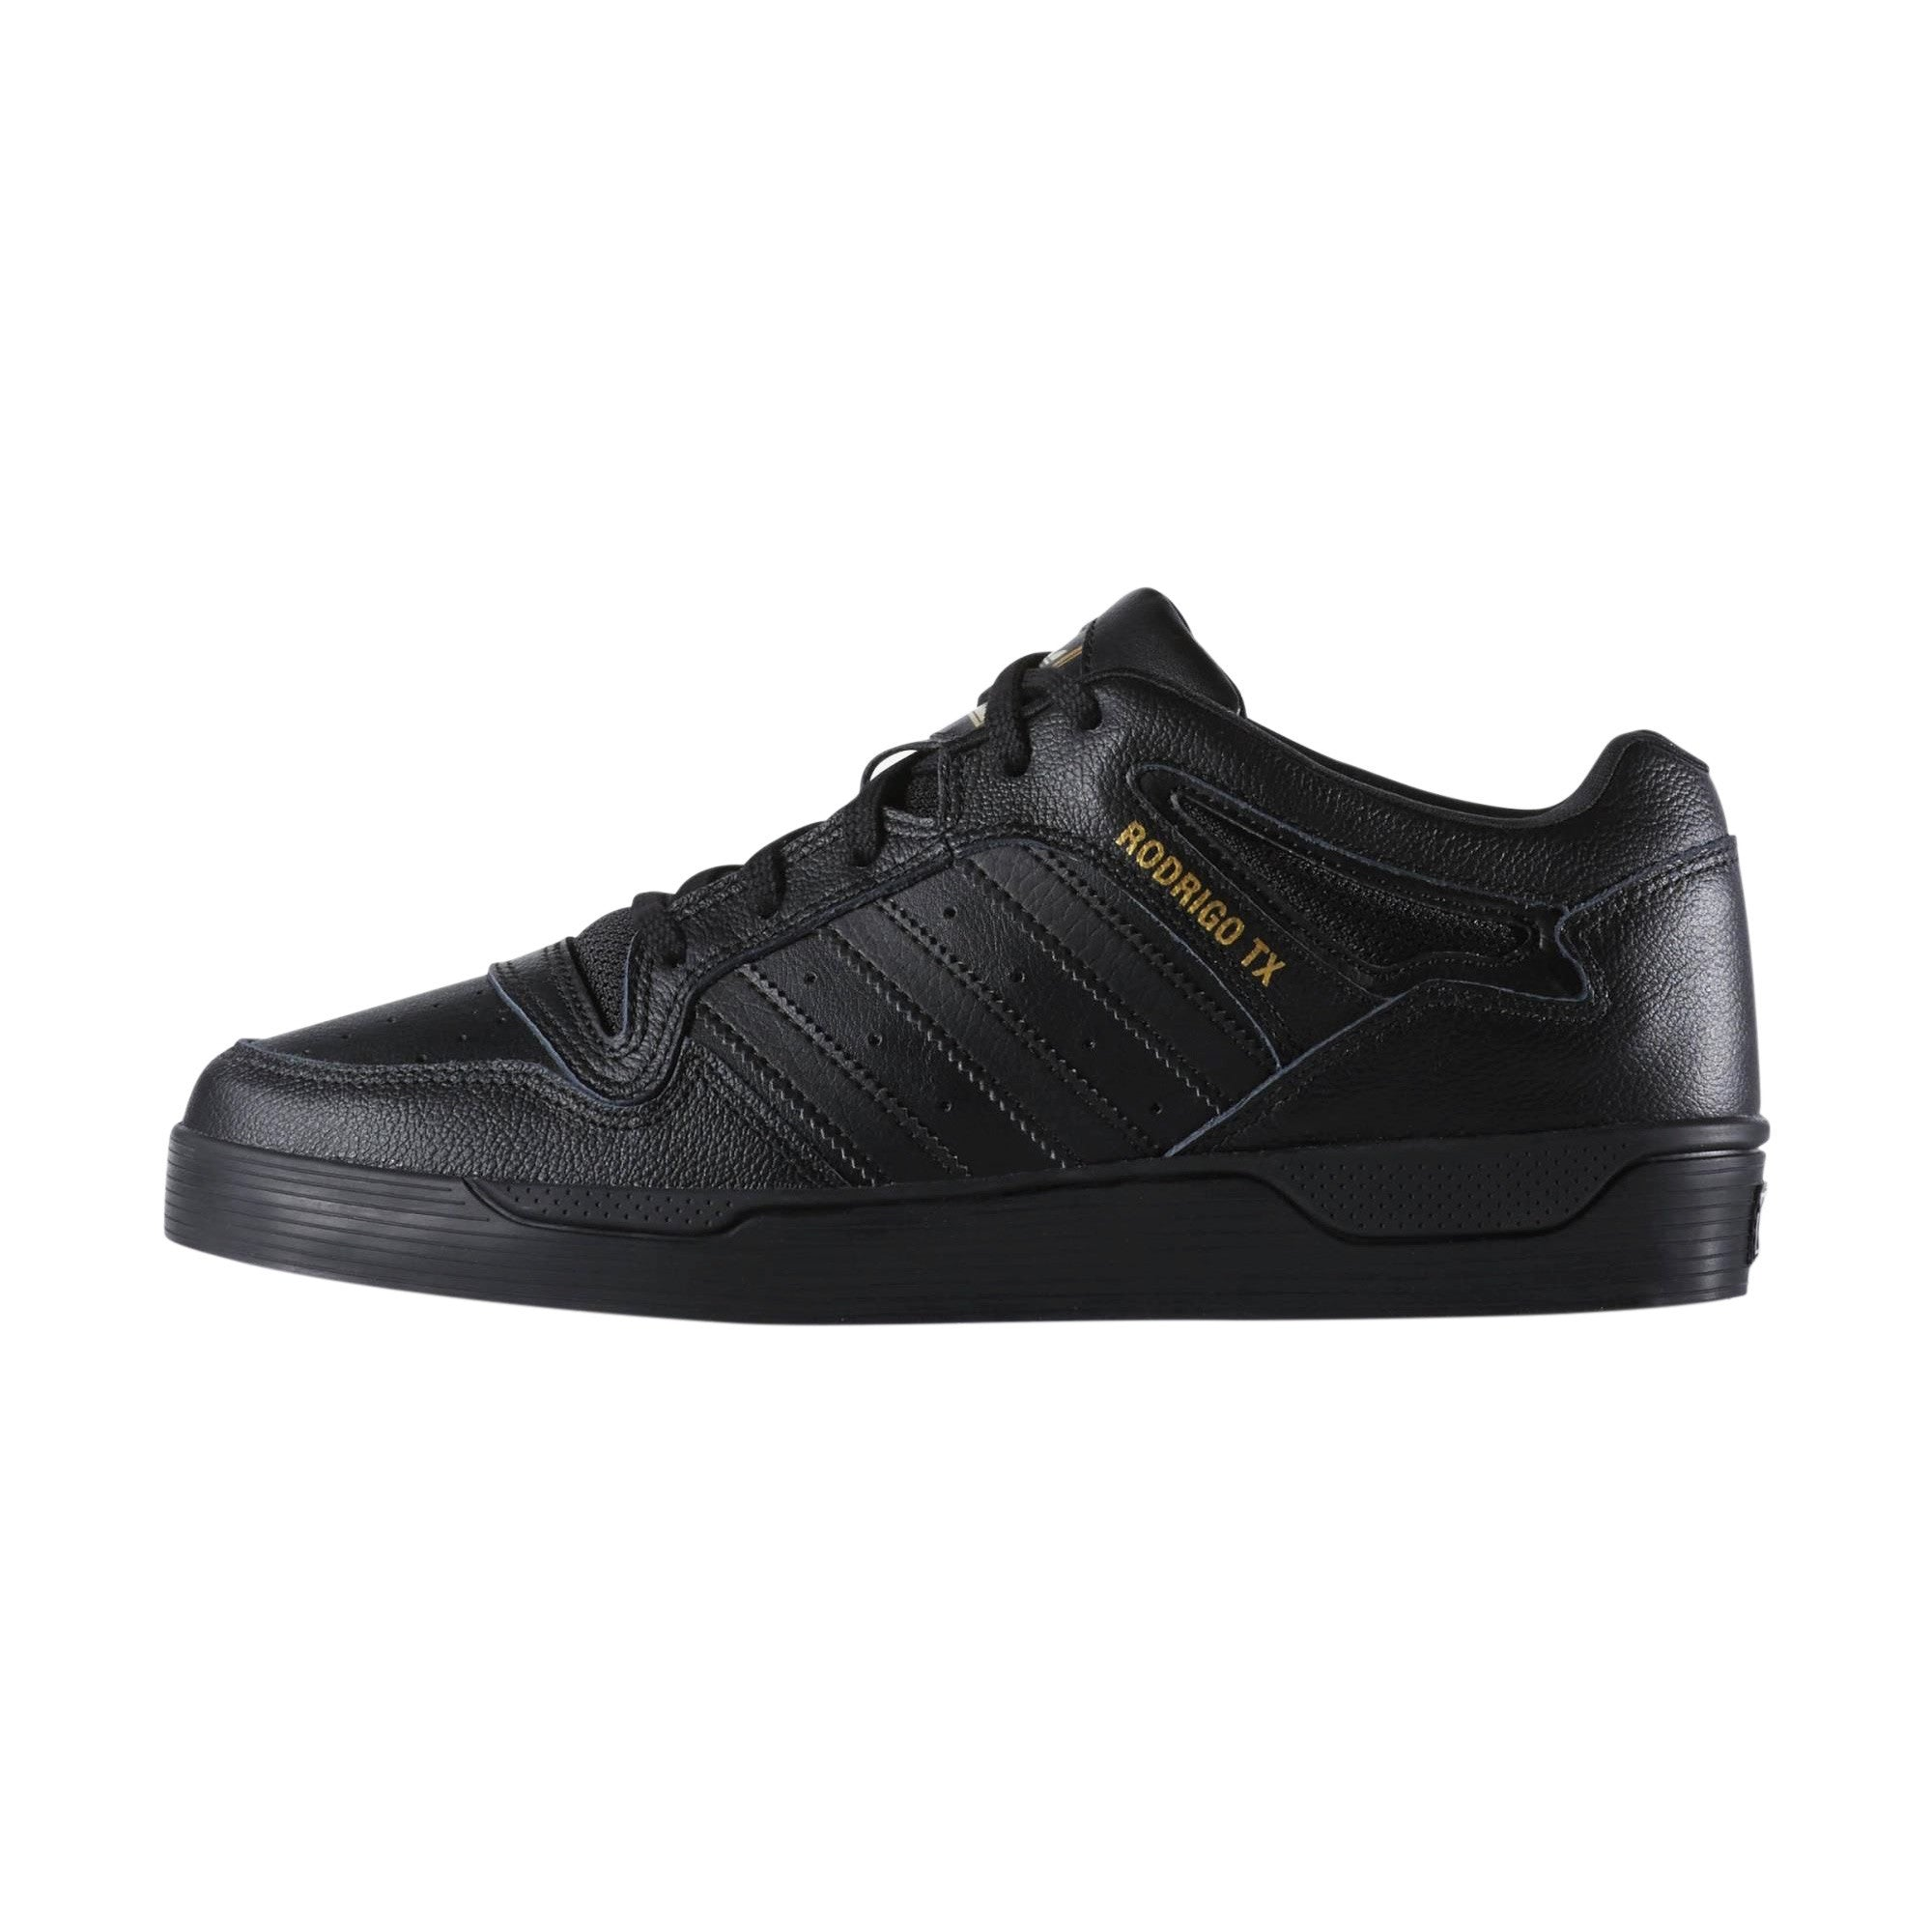 adidas originals men's locator mid leather skateboarding shoes